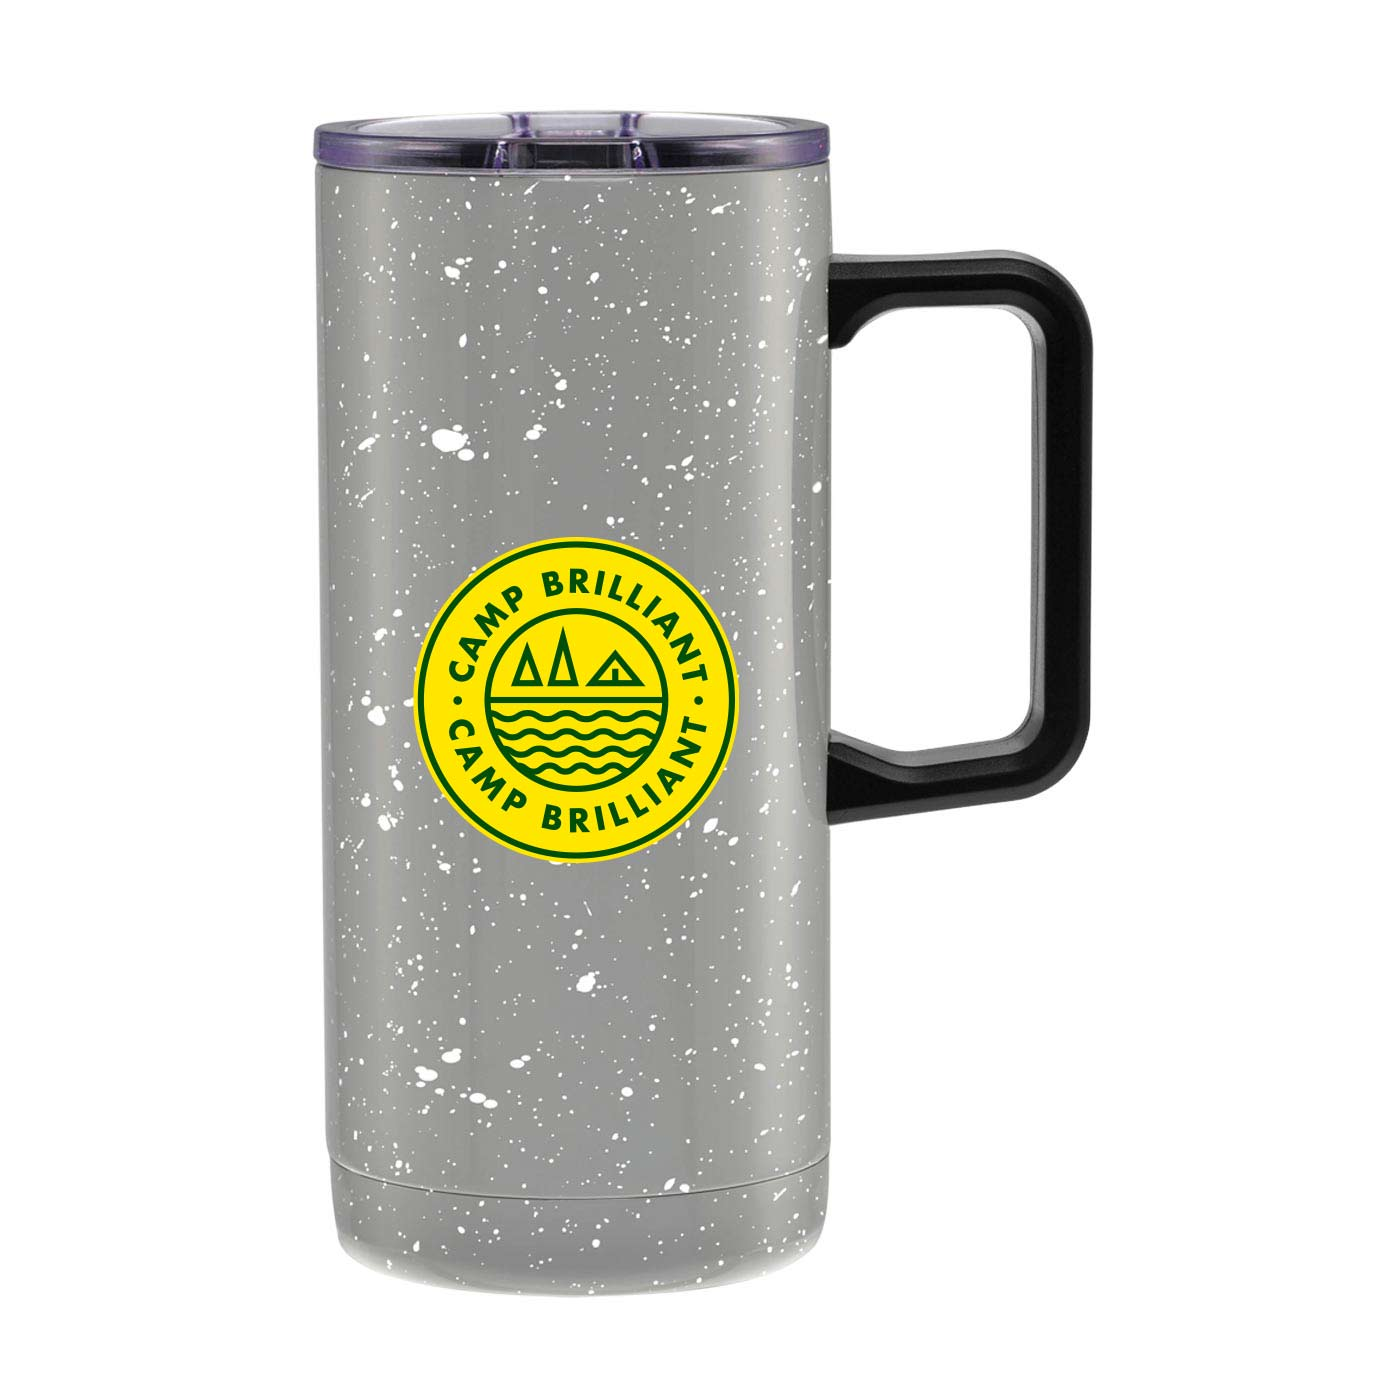 229154 speckled camper tumbler two color one location imprint